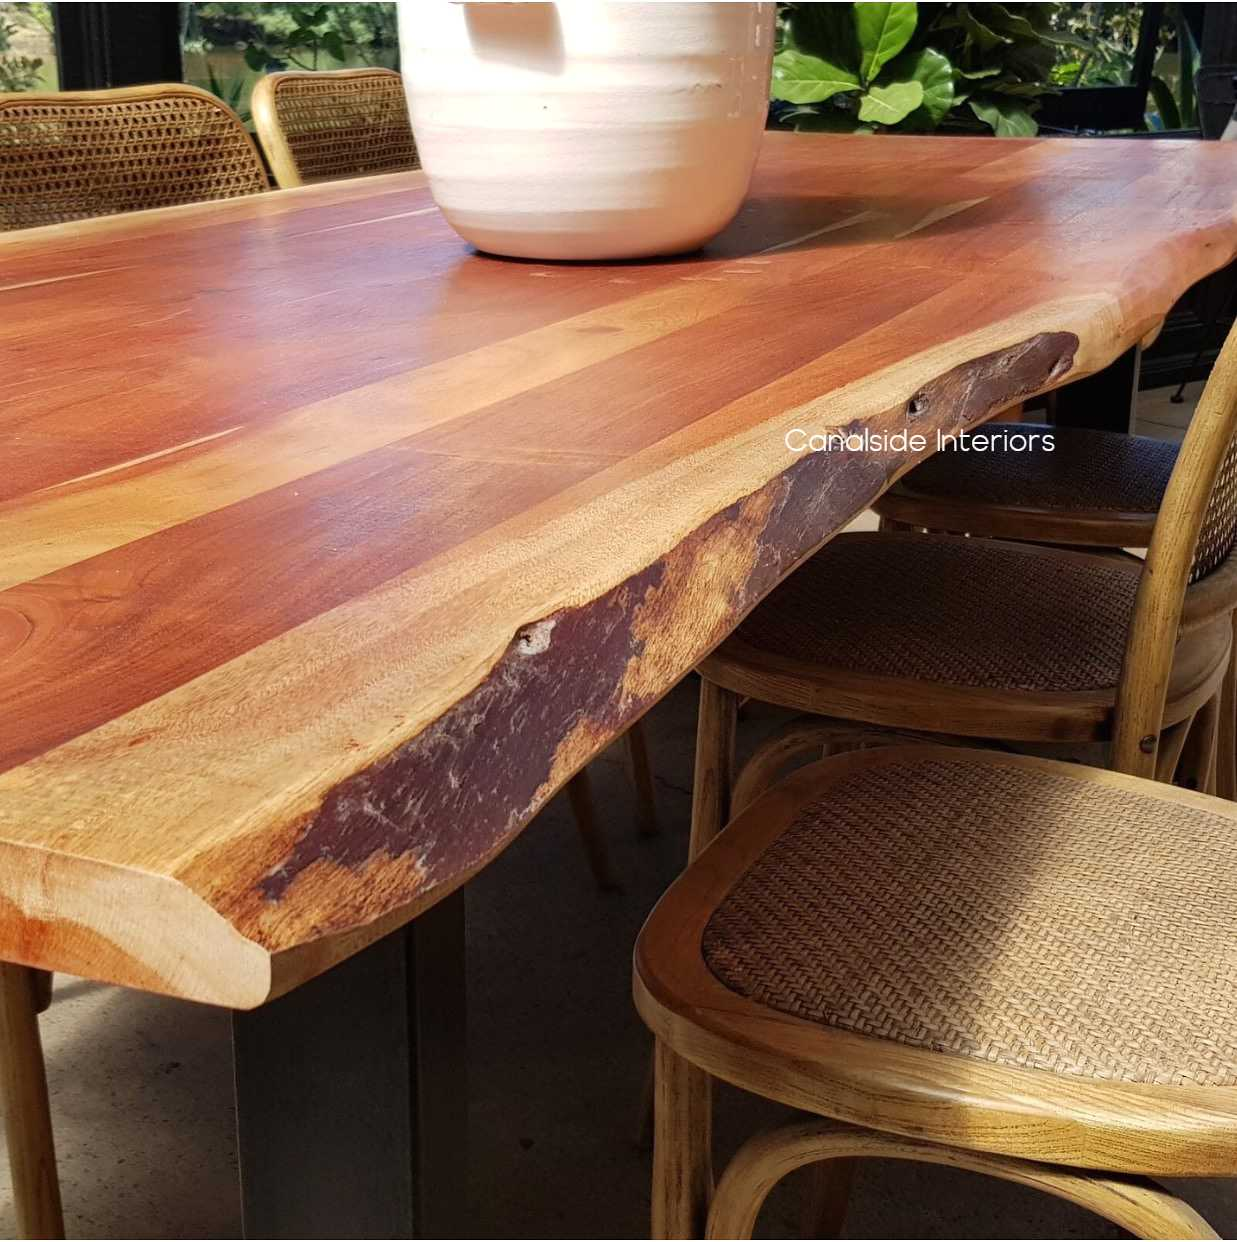 Protractor Industrial Dining Table with Live Edge Wood Top Canalside Interiors